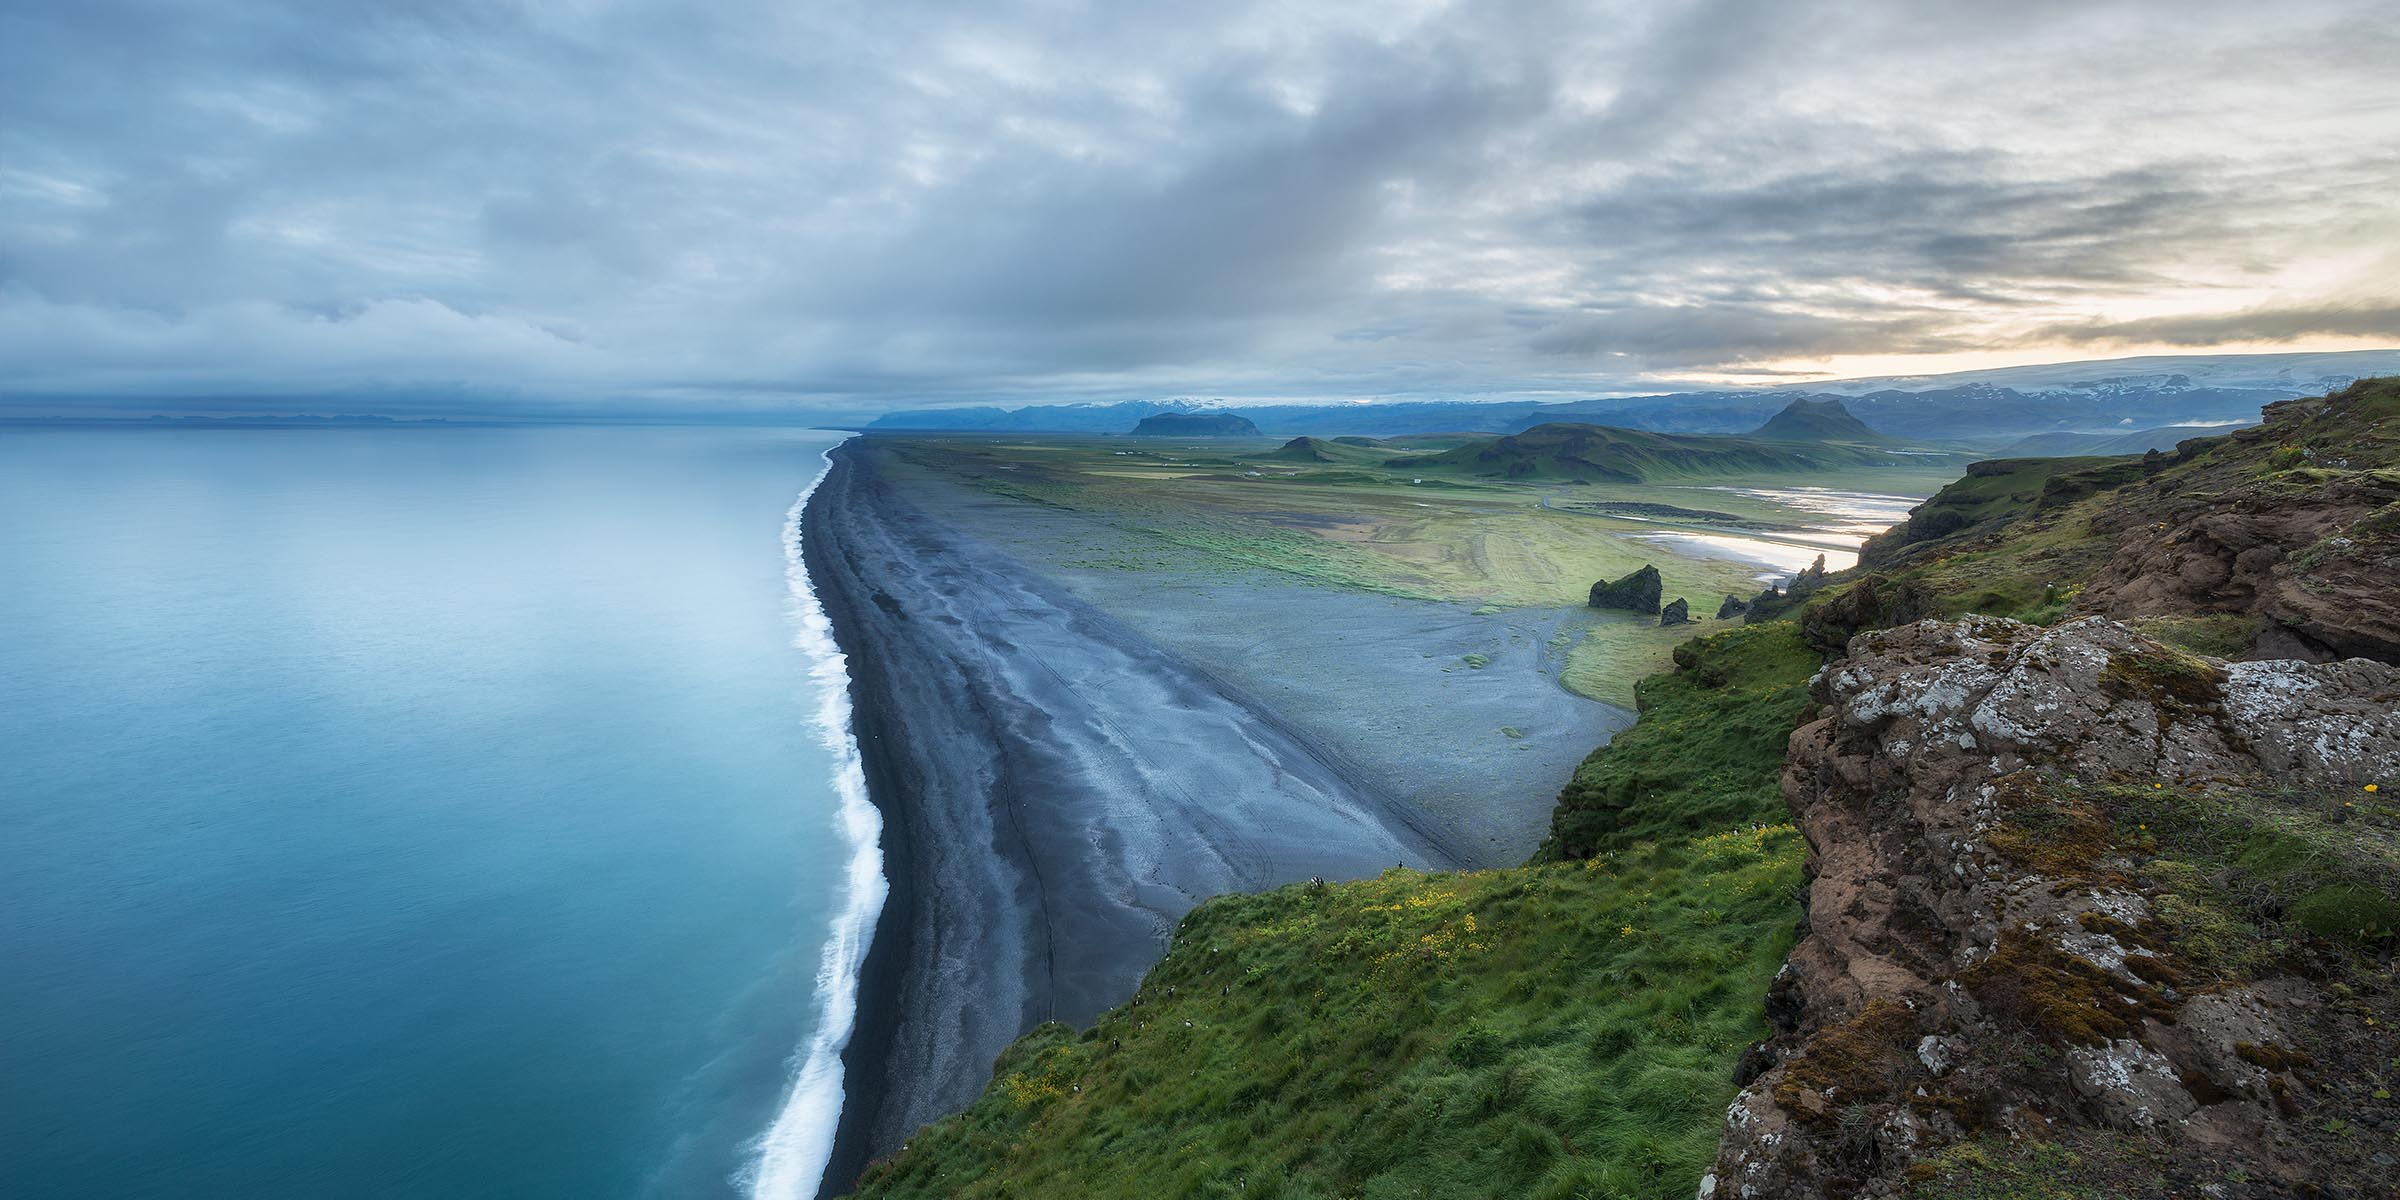 Photograph of Black Sand Beach in Dyrholaey , Iceland by Brent Goldman Photography